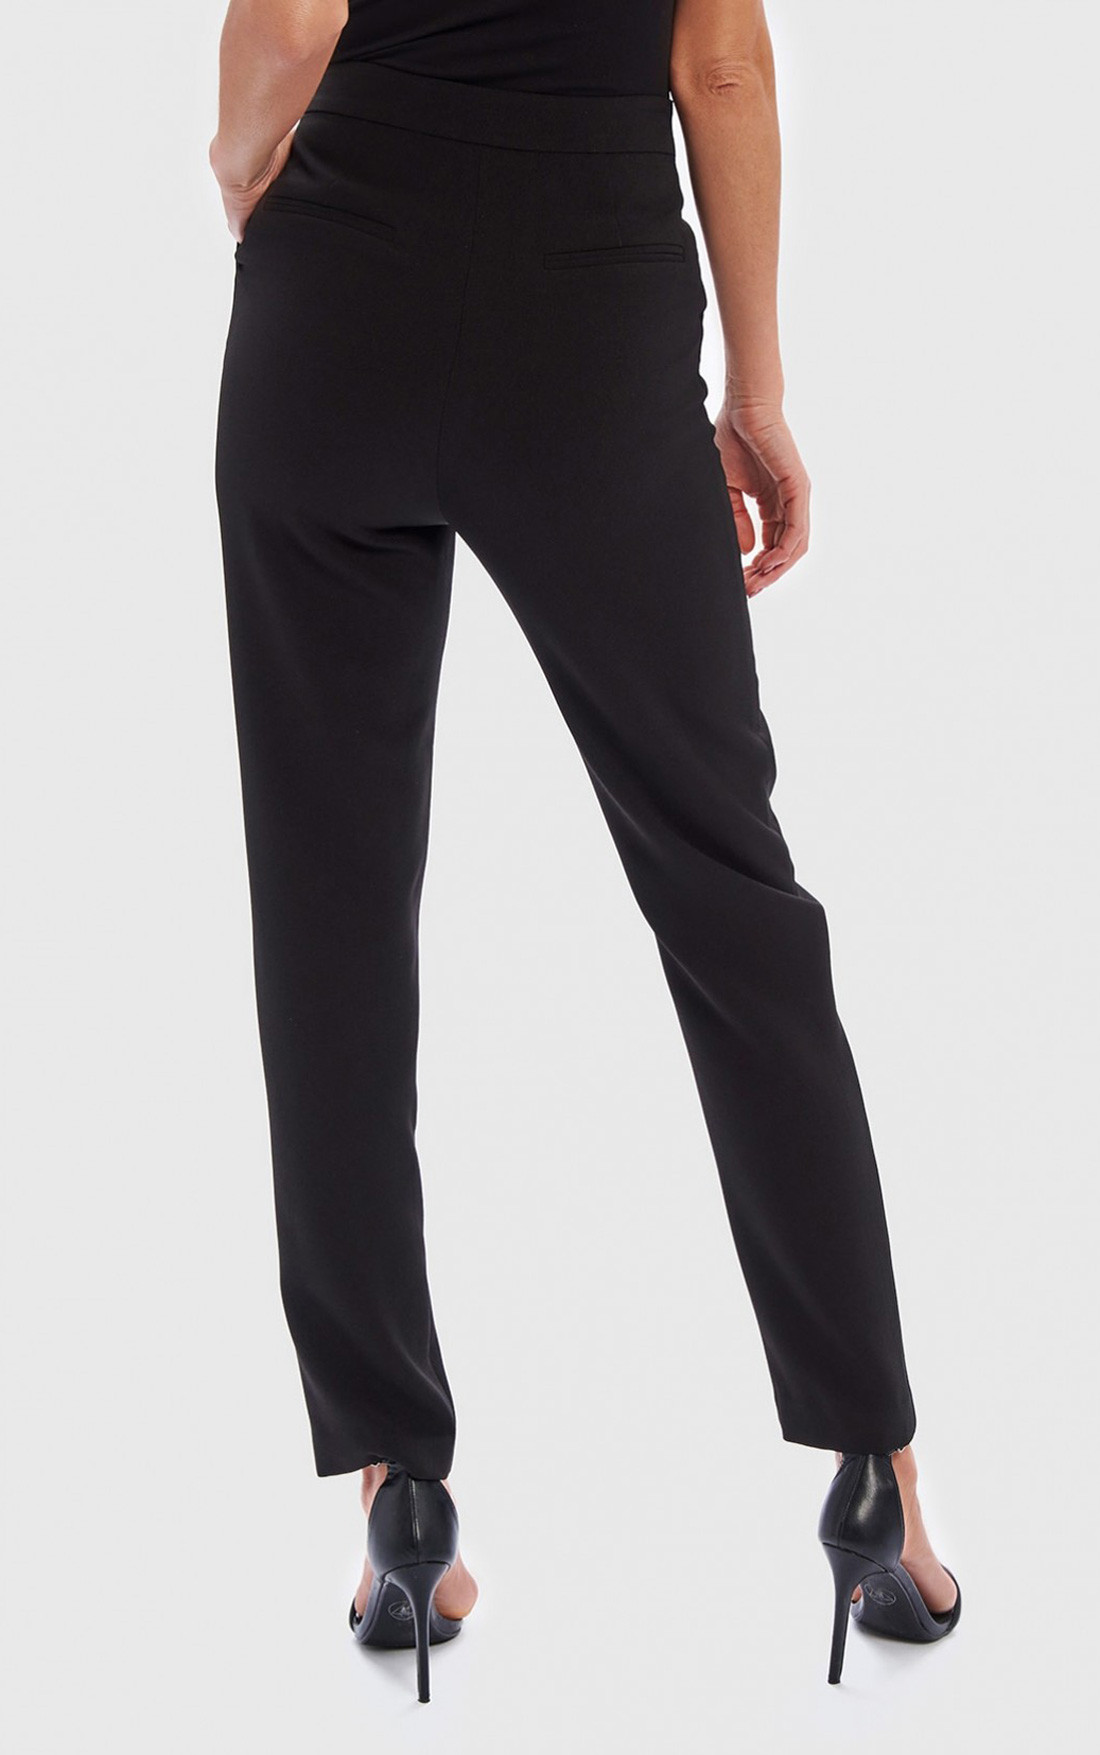 Forever Unique - Rue Black Cigarette Trousers (WF1153)